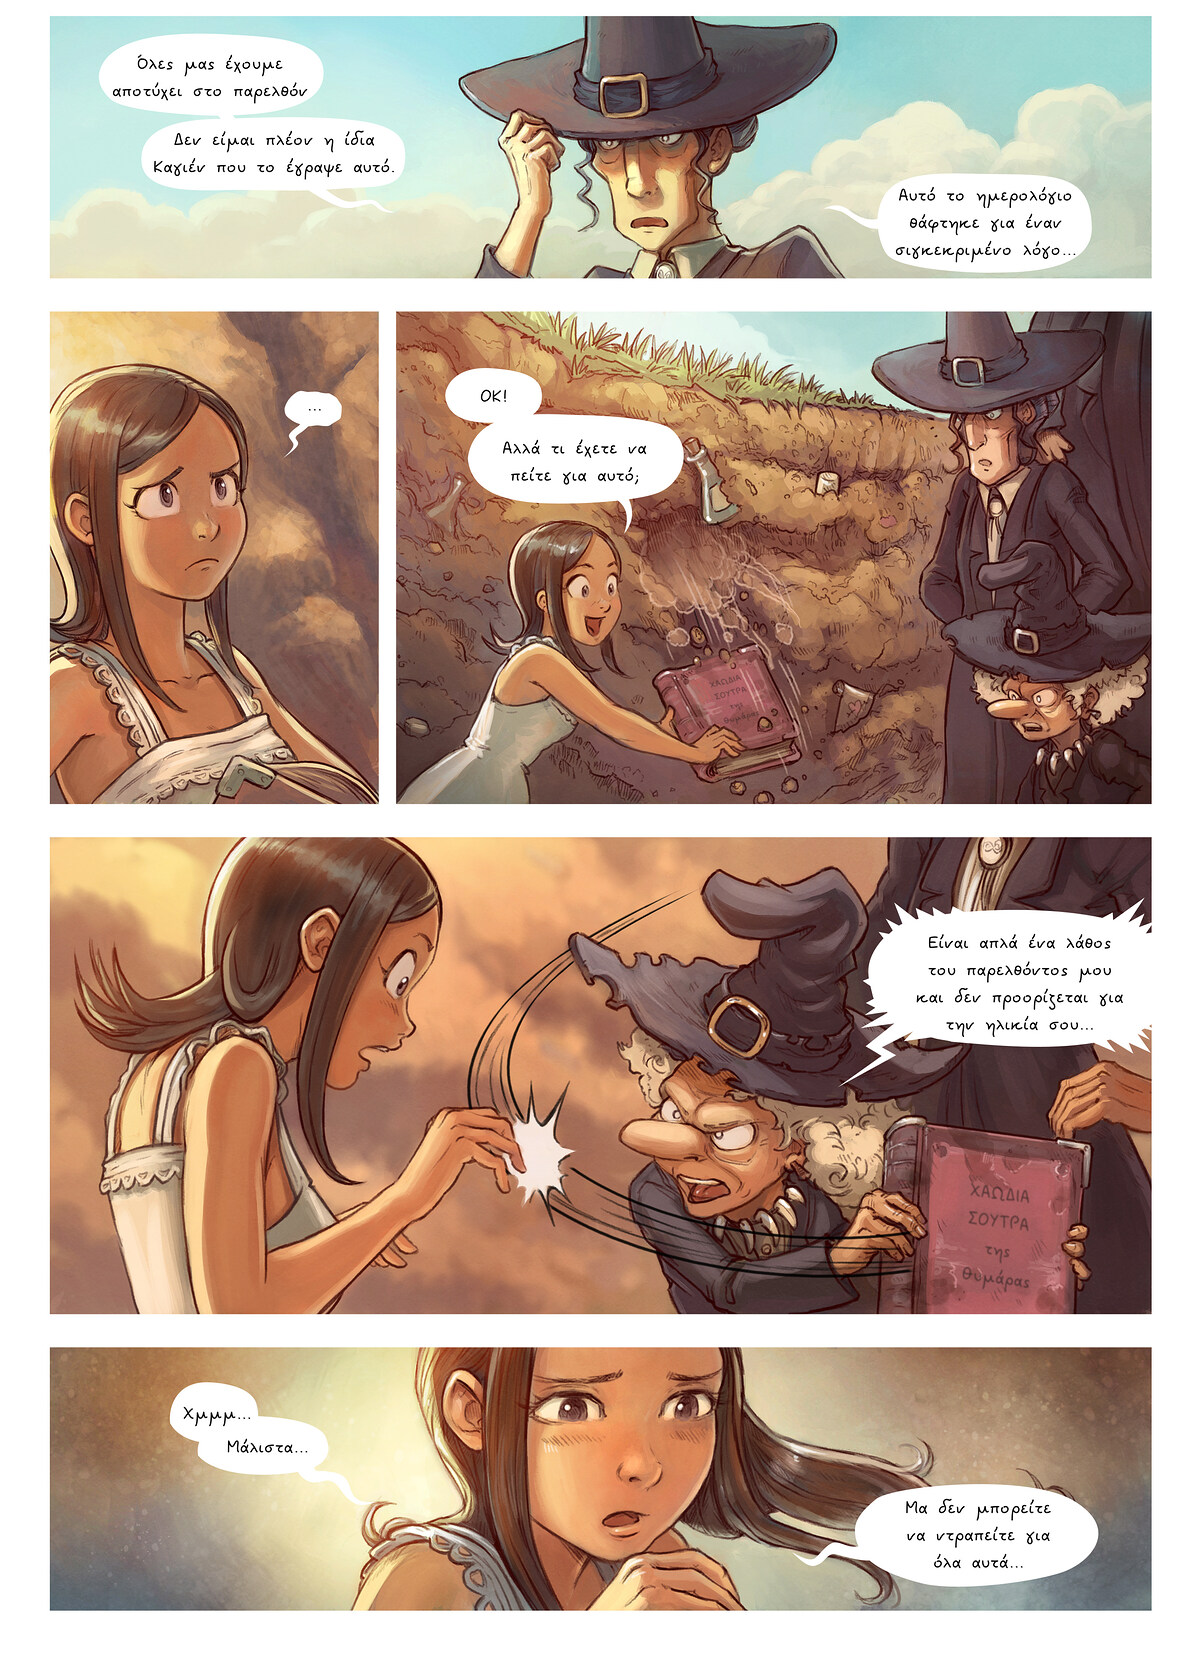 A webcomic page of Pepper&Carrot, episode 19 [el], page 5